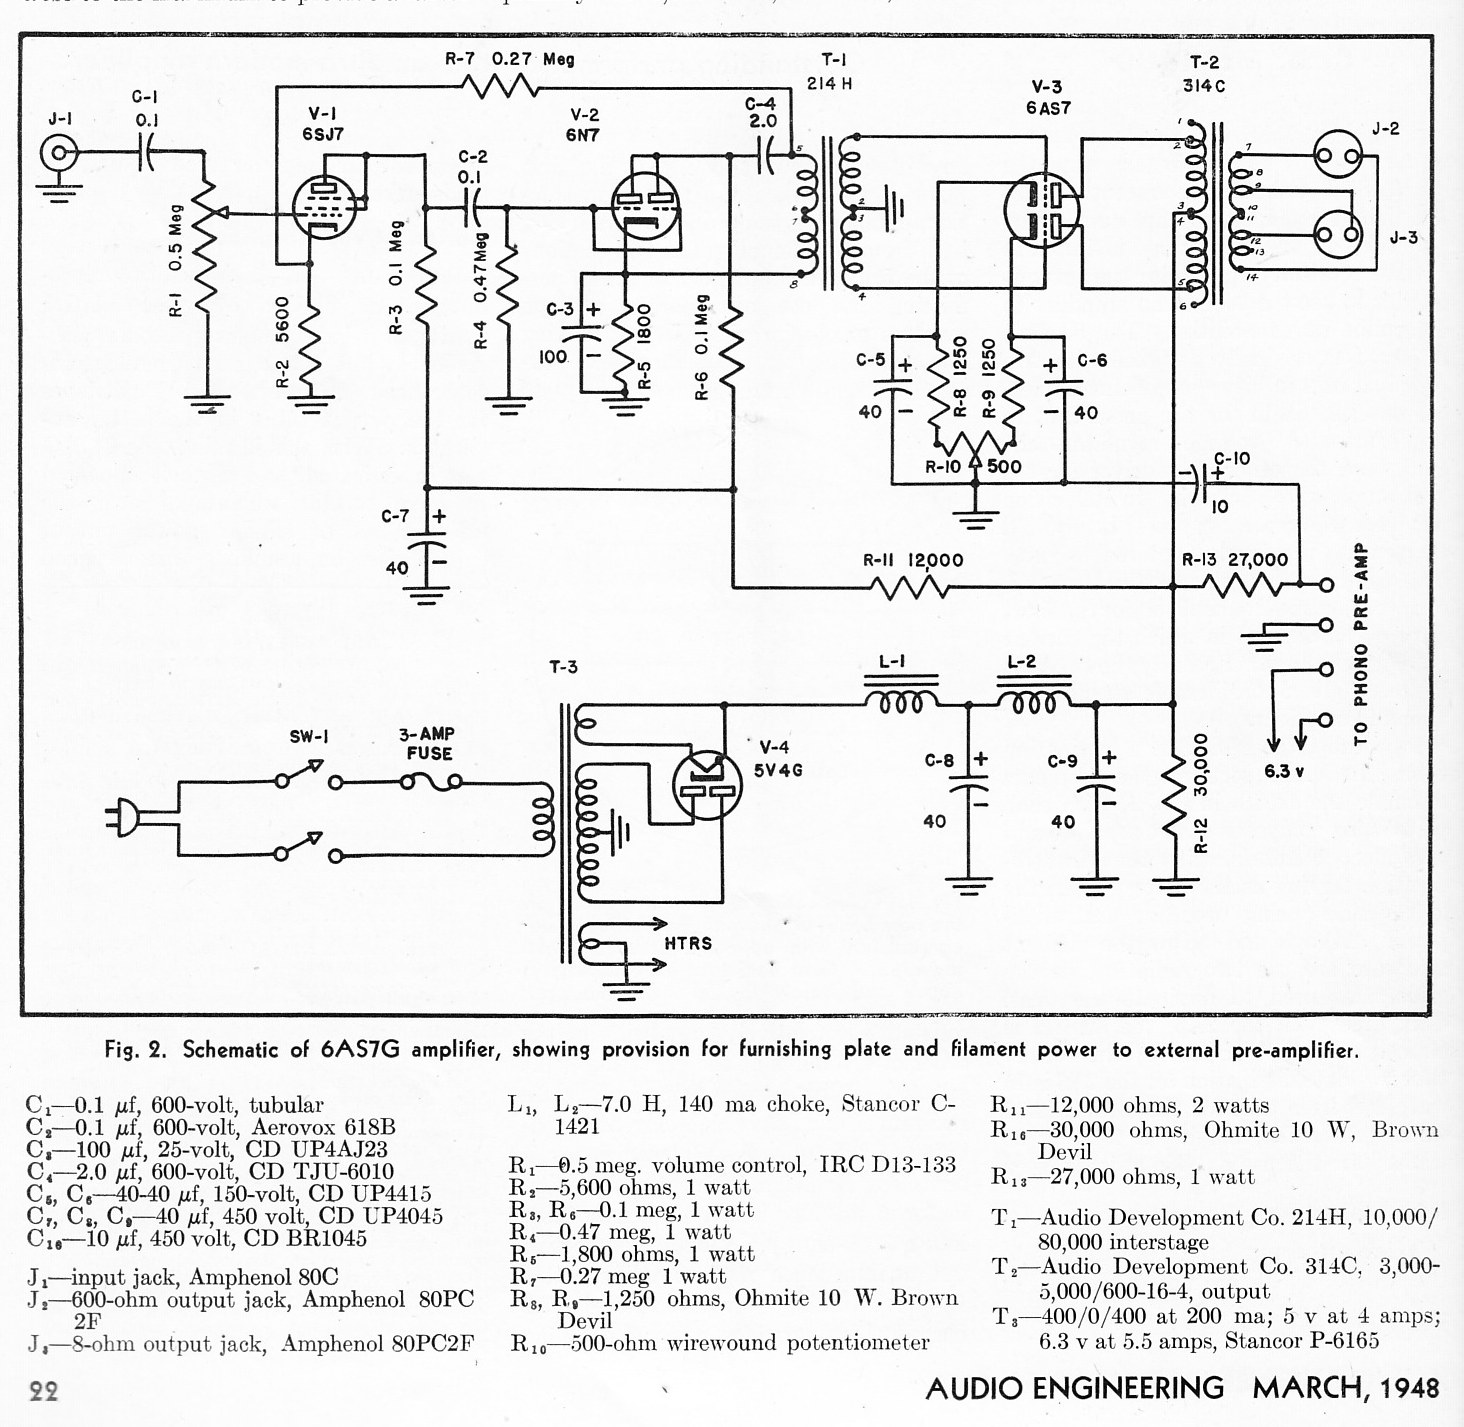 10 Watt Guitar Tube Schematic Get Free Image About Auto Vr6 Wiring Diagram Hi I Have A 02 It Will Not Fire On 1two New Fi Amp Schematics